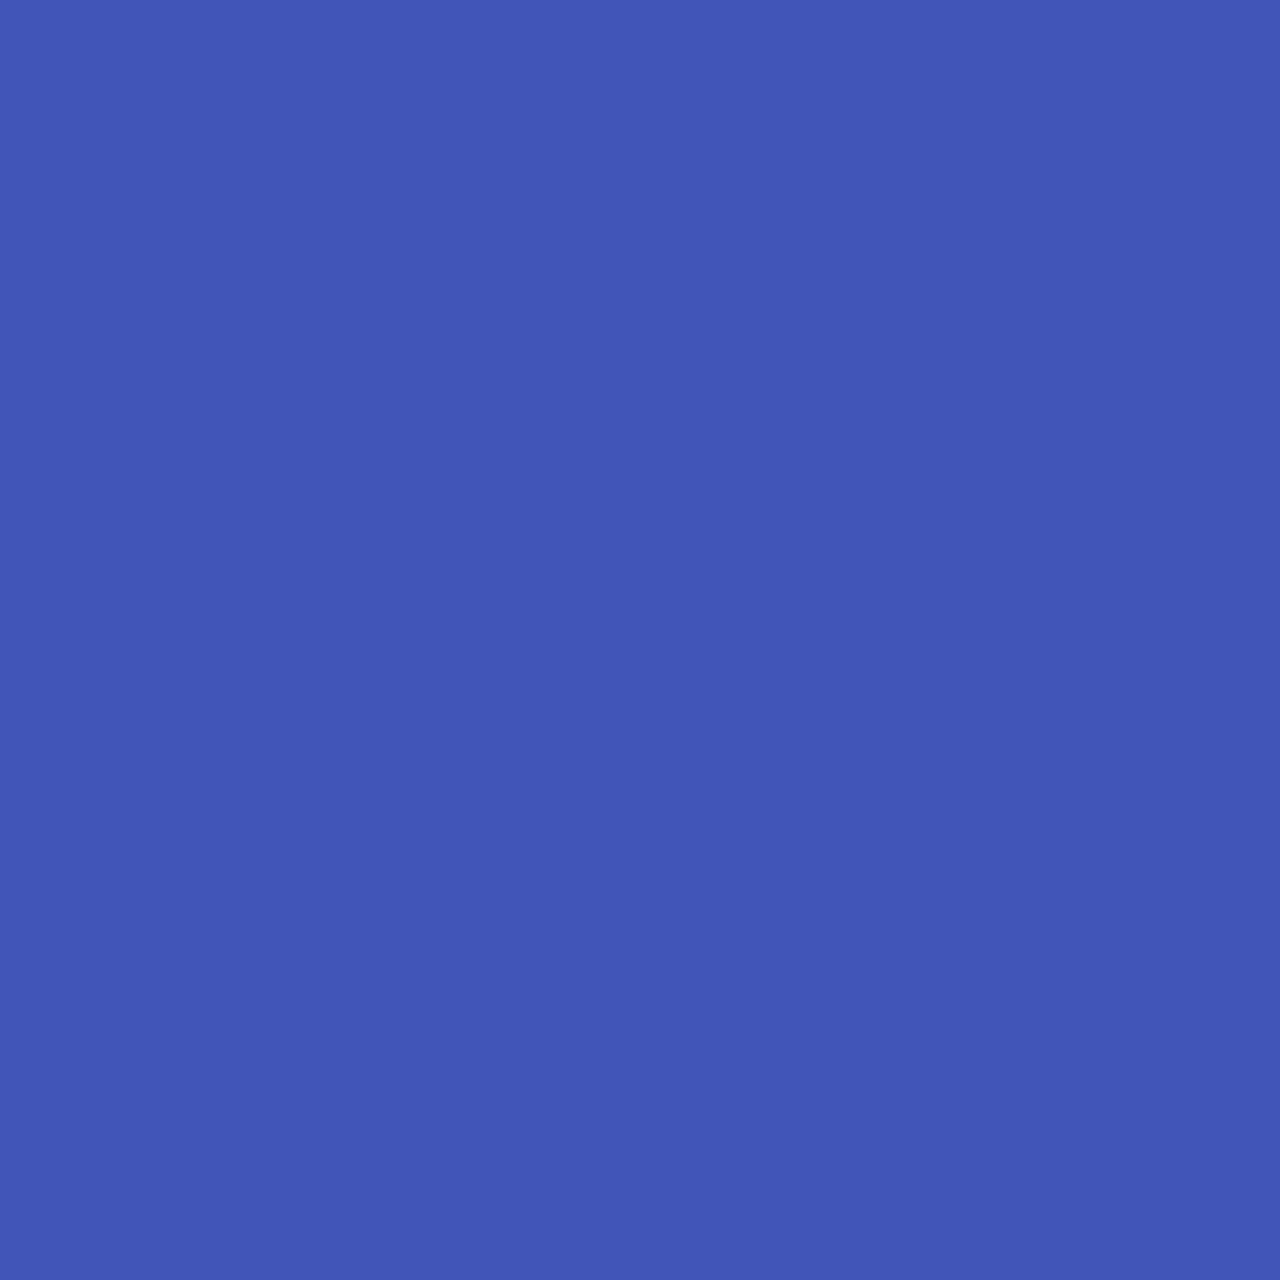 #3220 Rosco Gels Roscolux Double Blue CTB, 20x24""